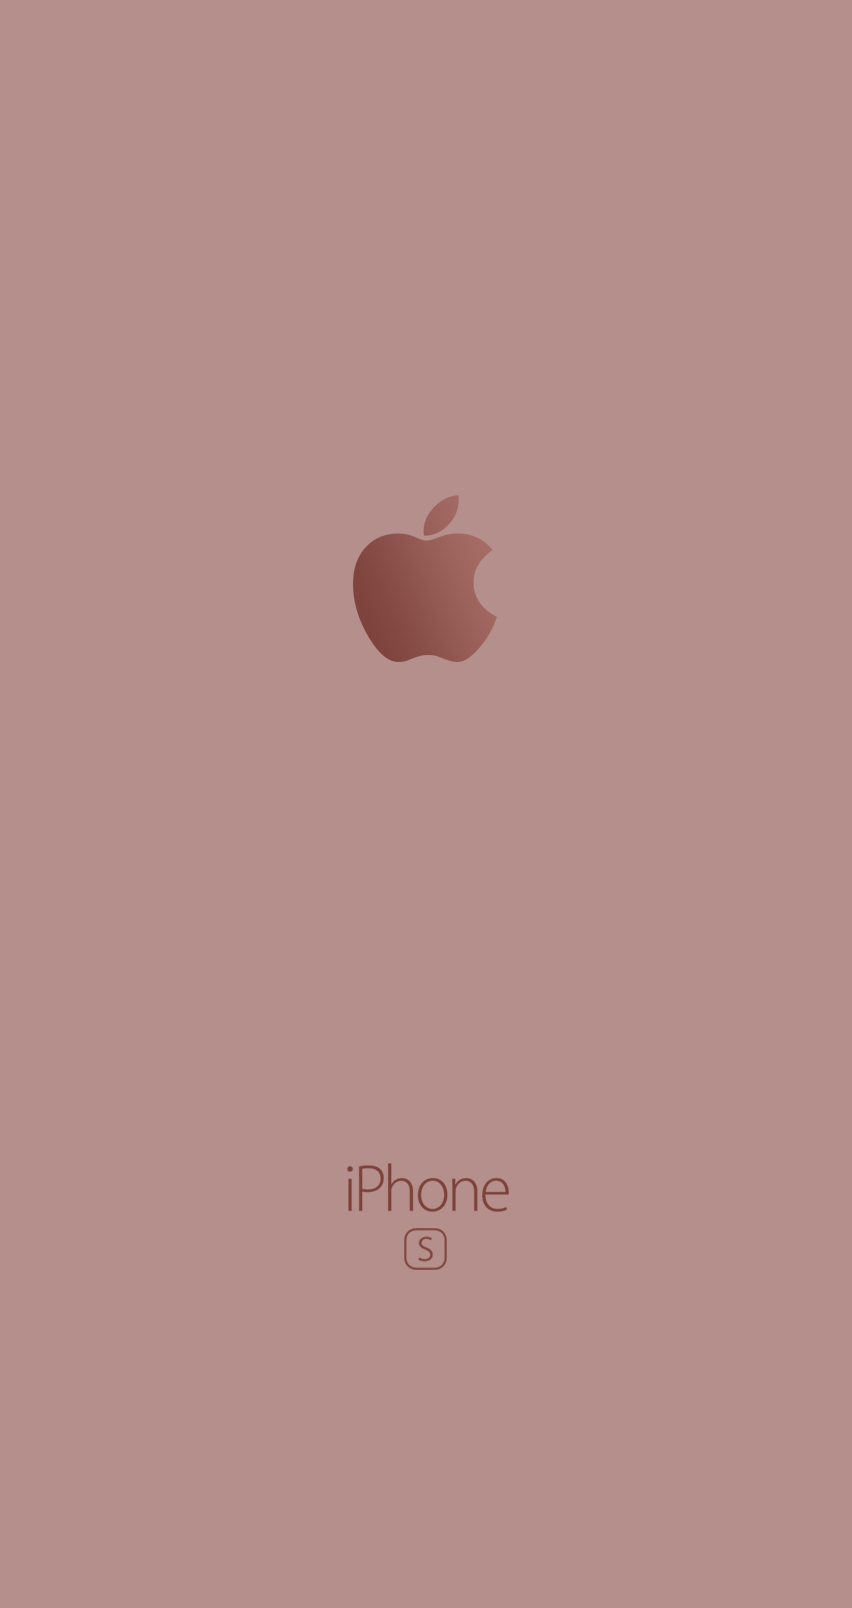 Iphone 6s Gold Wallpapers Top Free Iphone 6s Gold Backgrounds